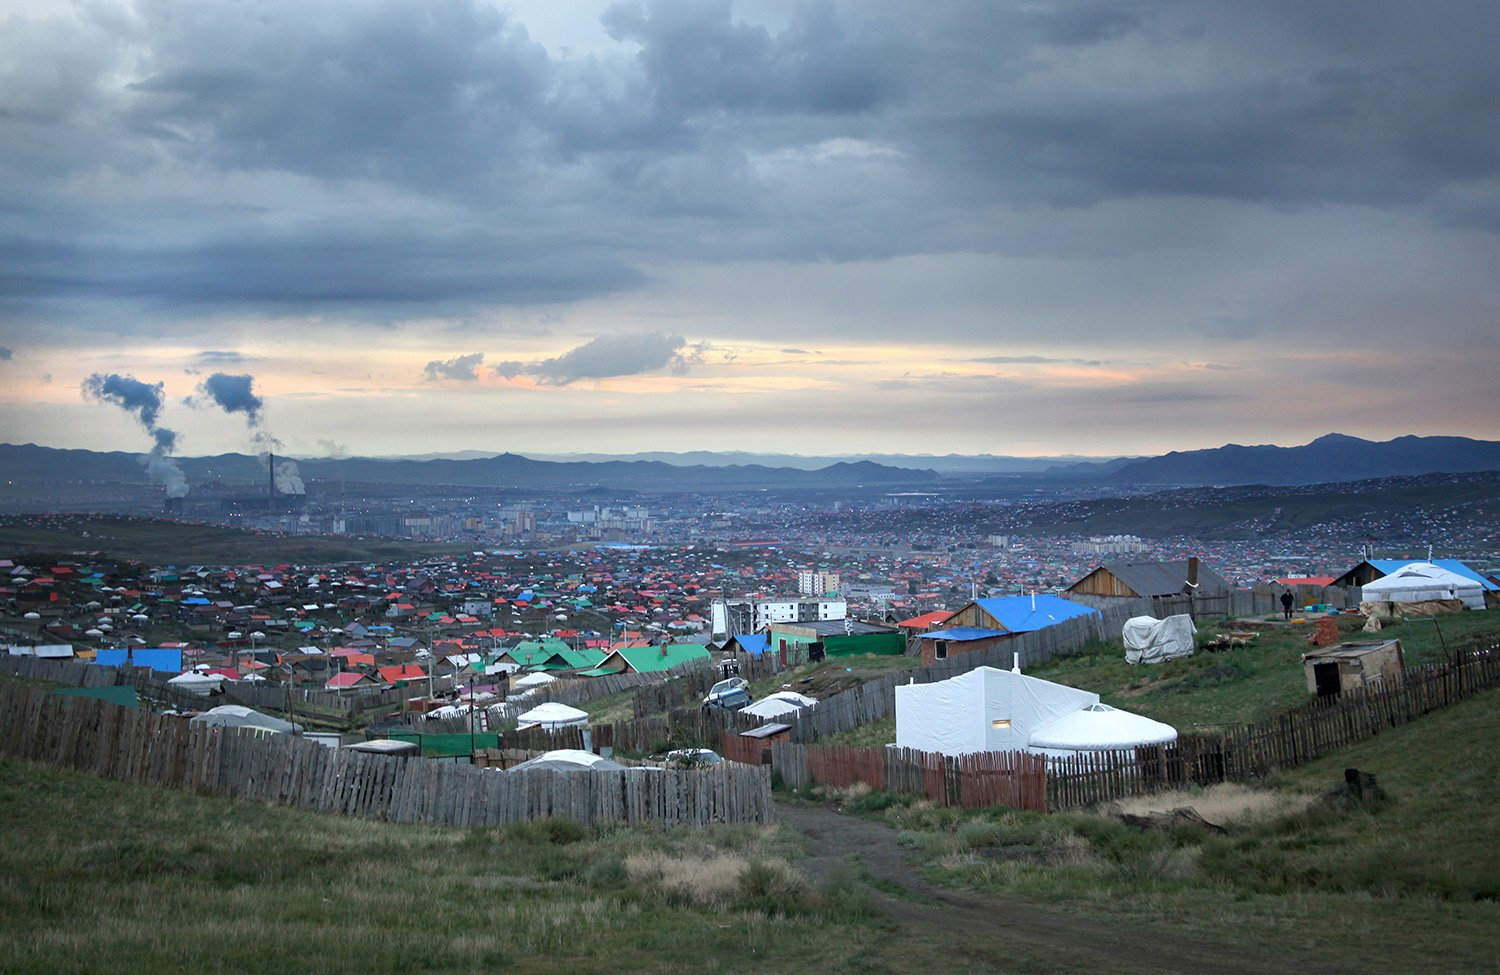 Ger Plug-in in the ger districts of Ulaanbaatar, Mongolia Rural Urban Framework (RUF)